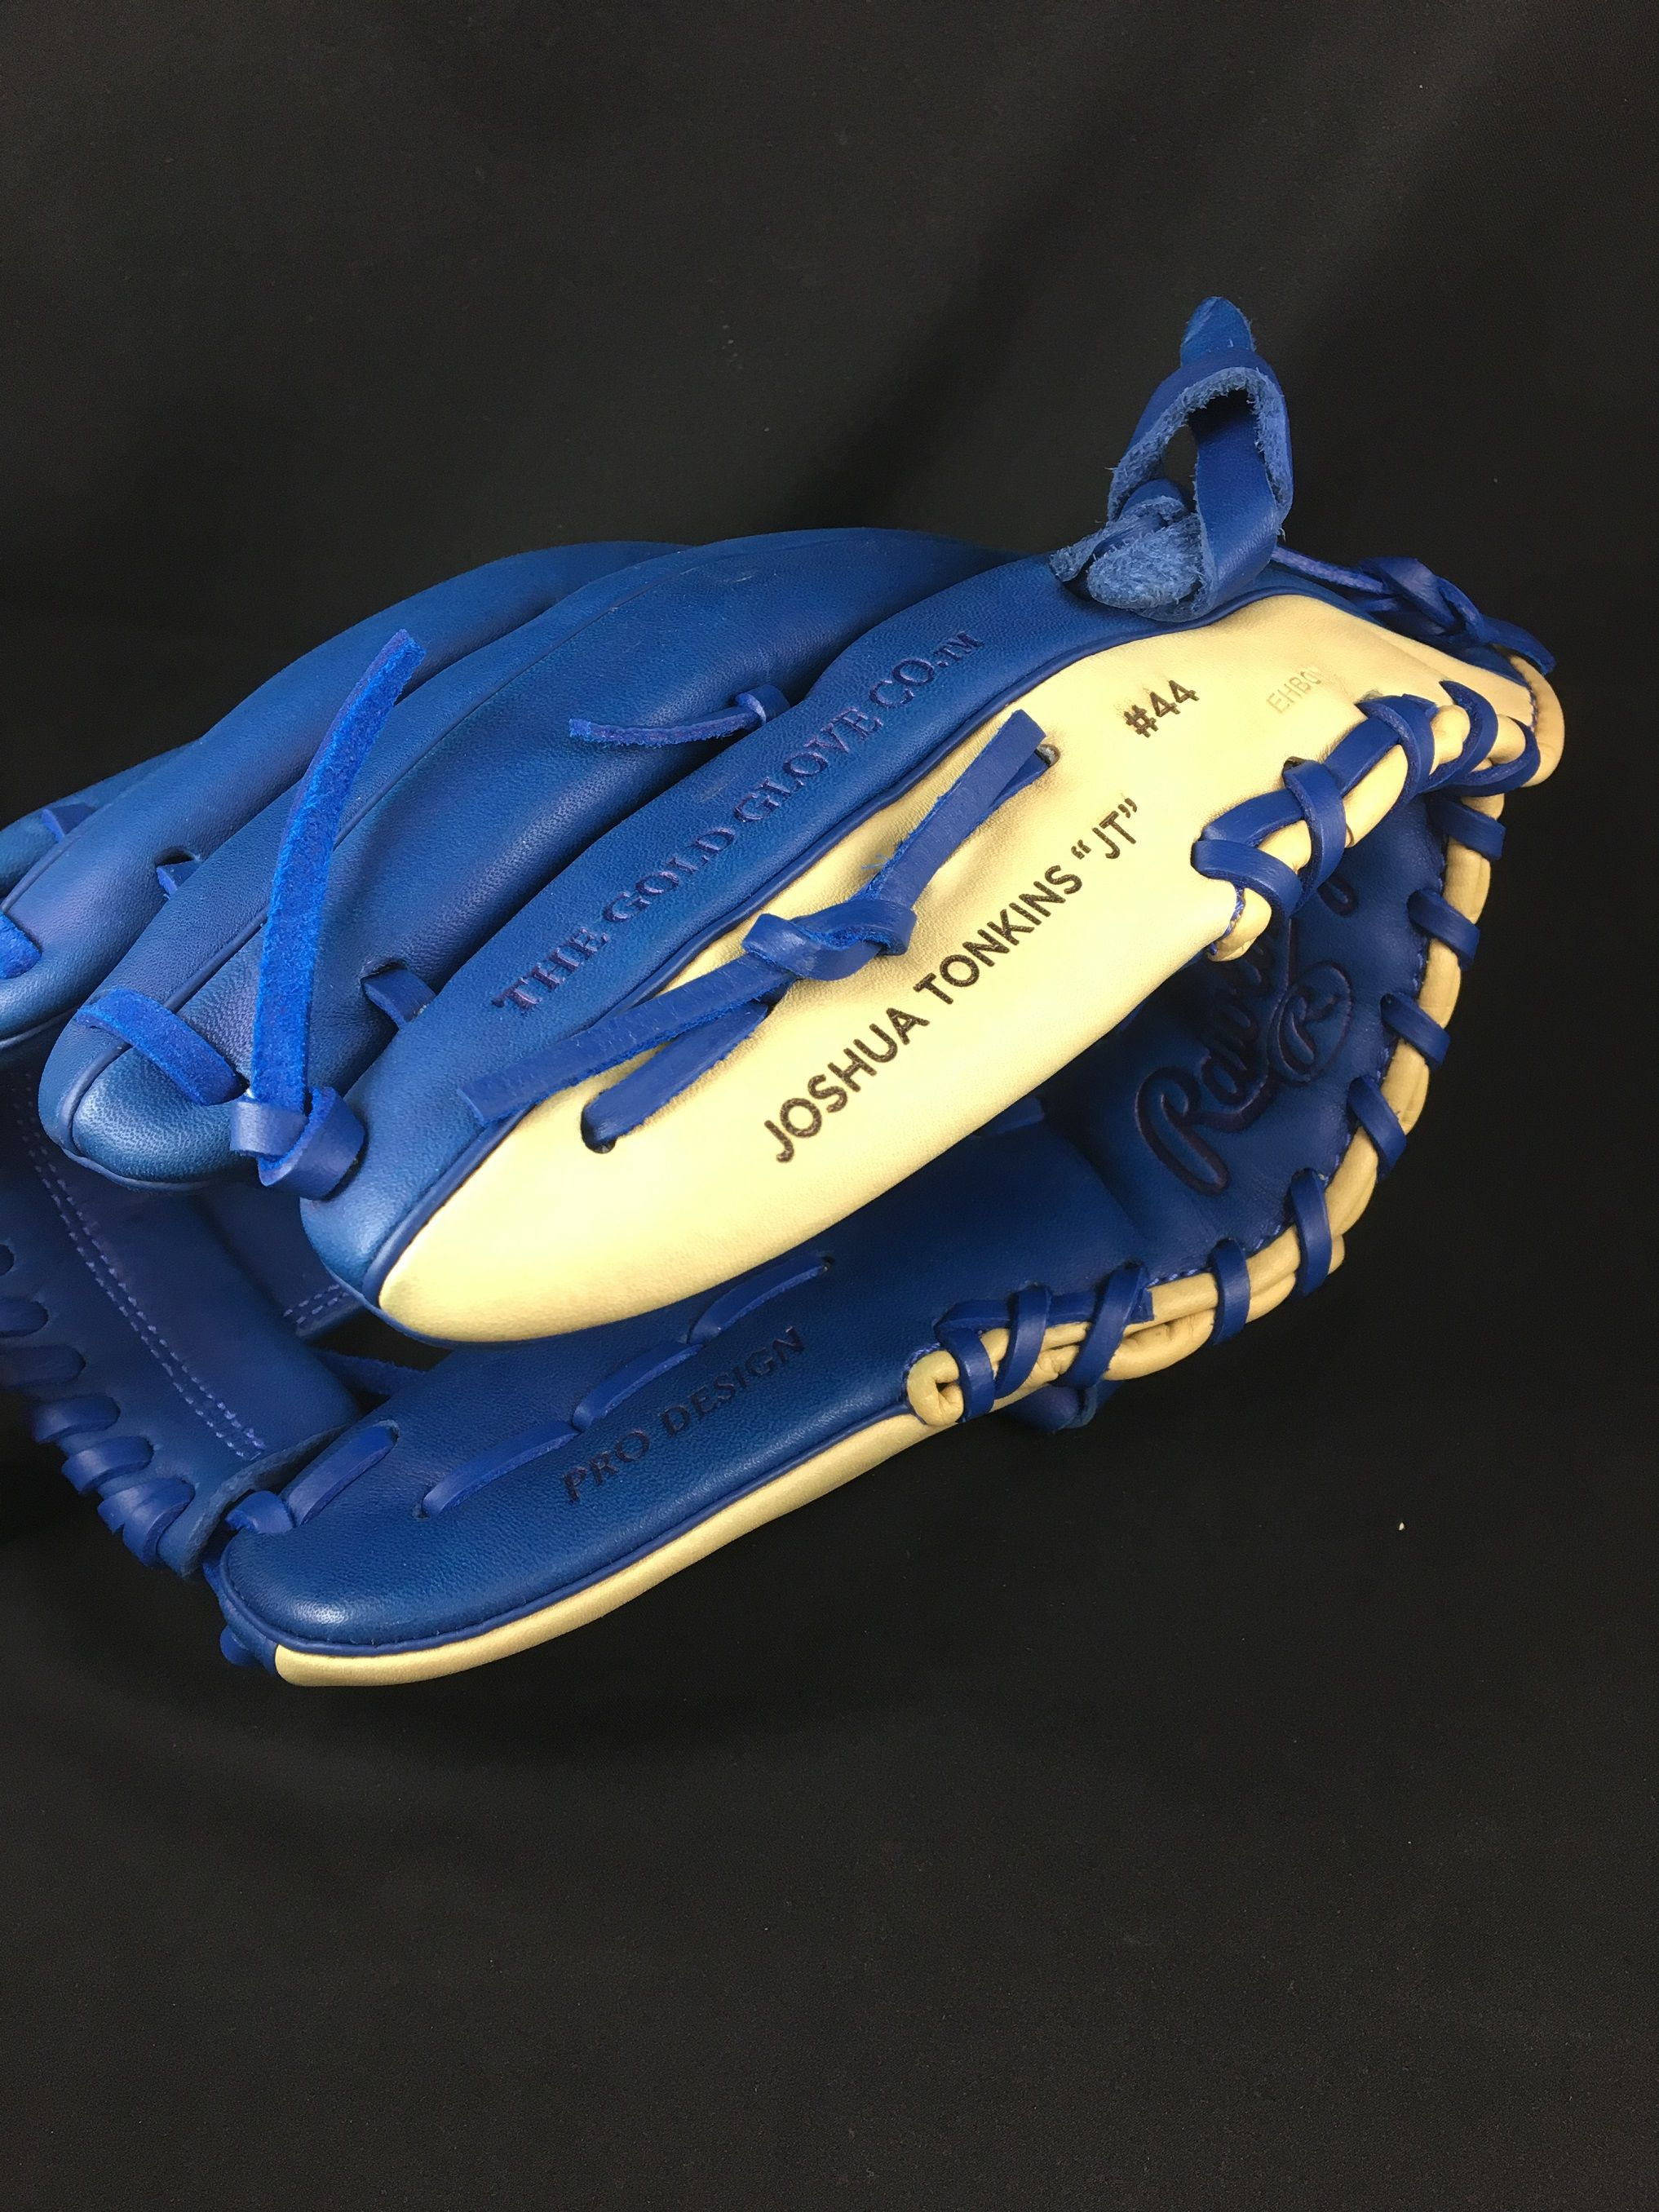 This Baseball Glove Has Been Lasered By Us For Our Client Laser Engrave Laser Engraving Baseball Glove Engraving